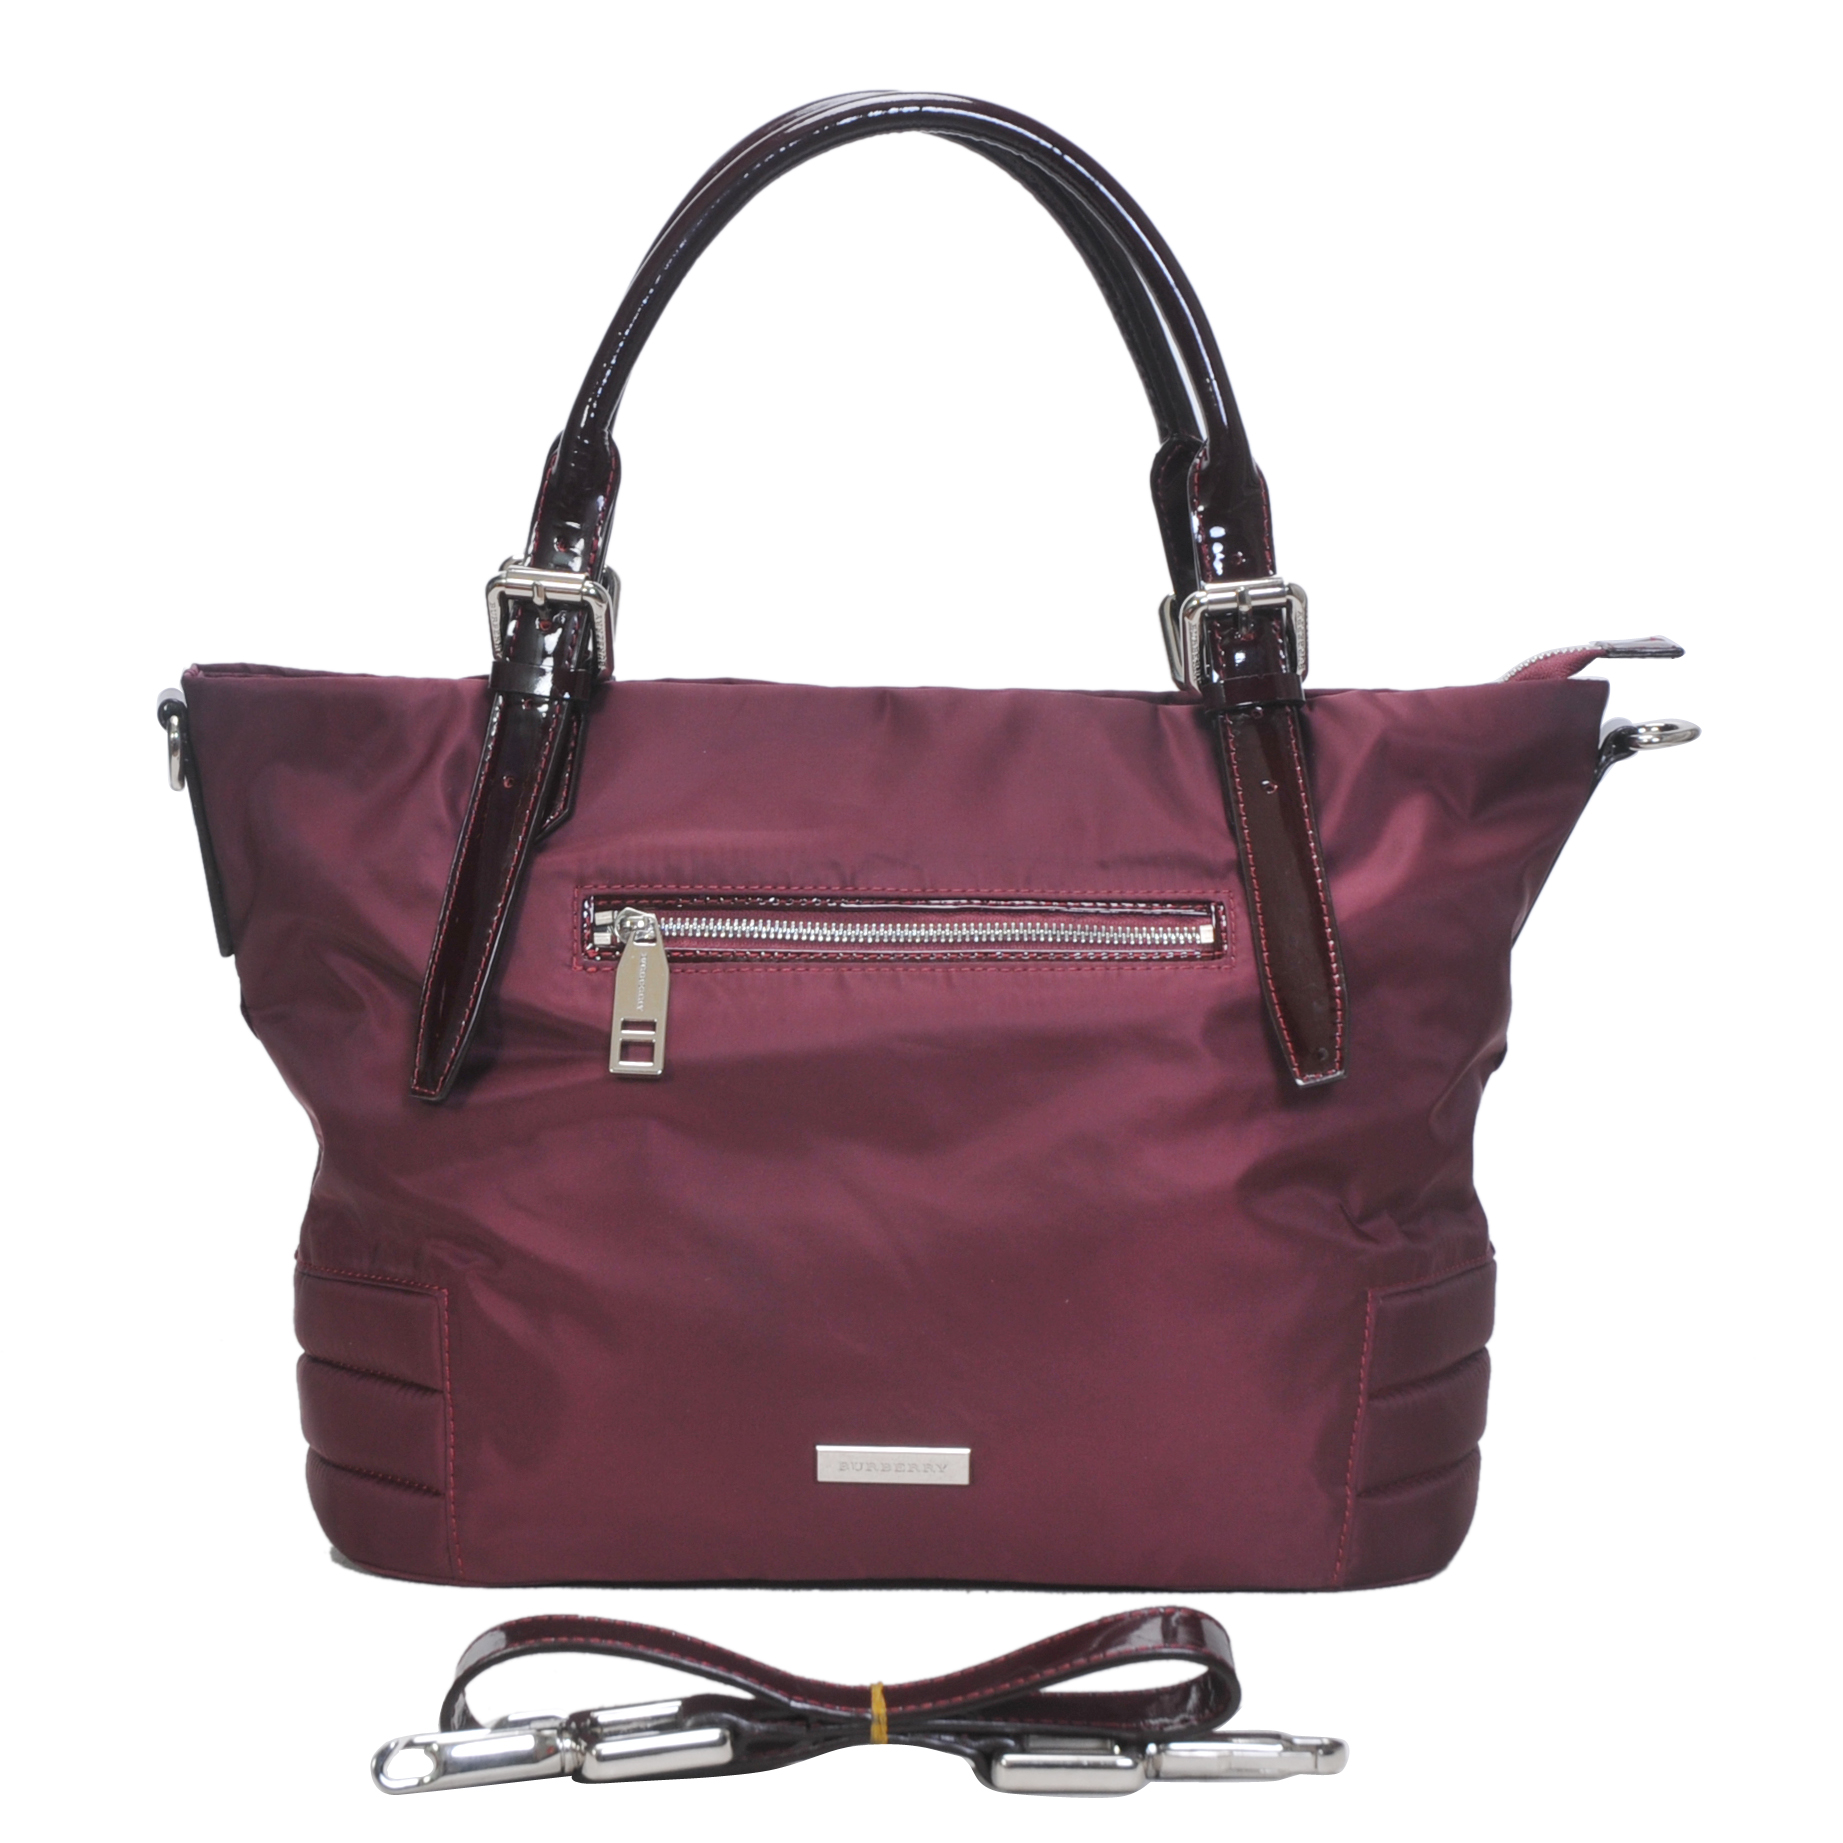 Burberry Outlet Tote Bag Red Model188